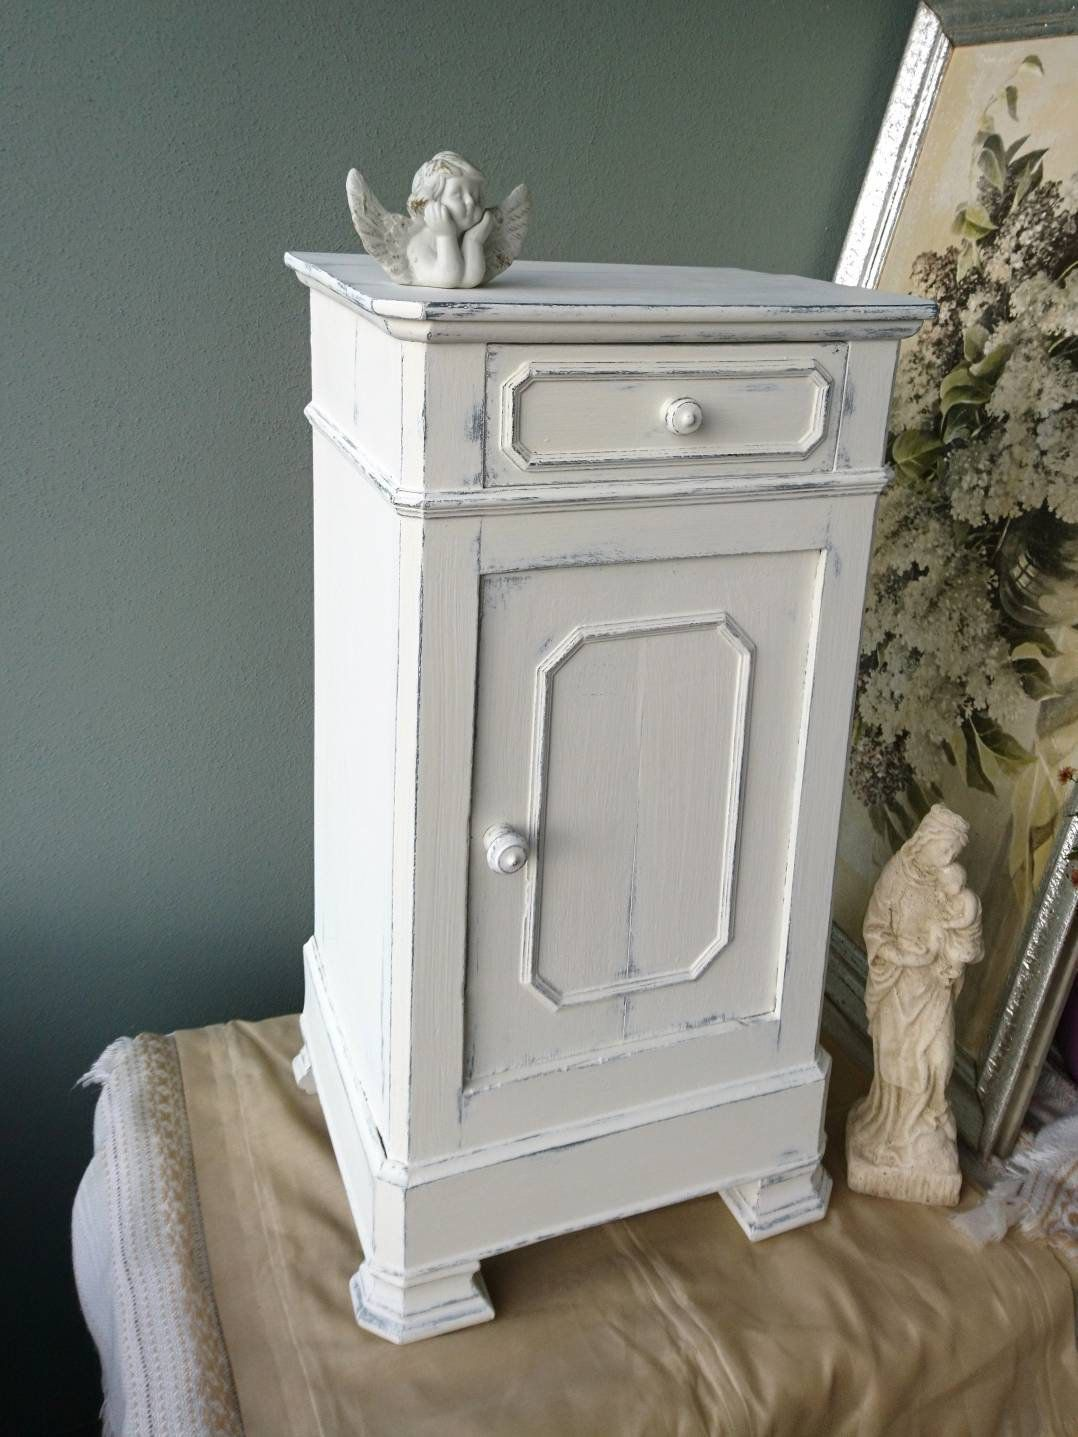 Ancient Small Chest Of Drawers From France At 1896 In Shabby